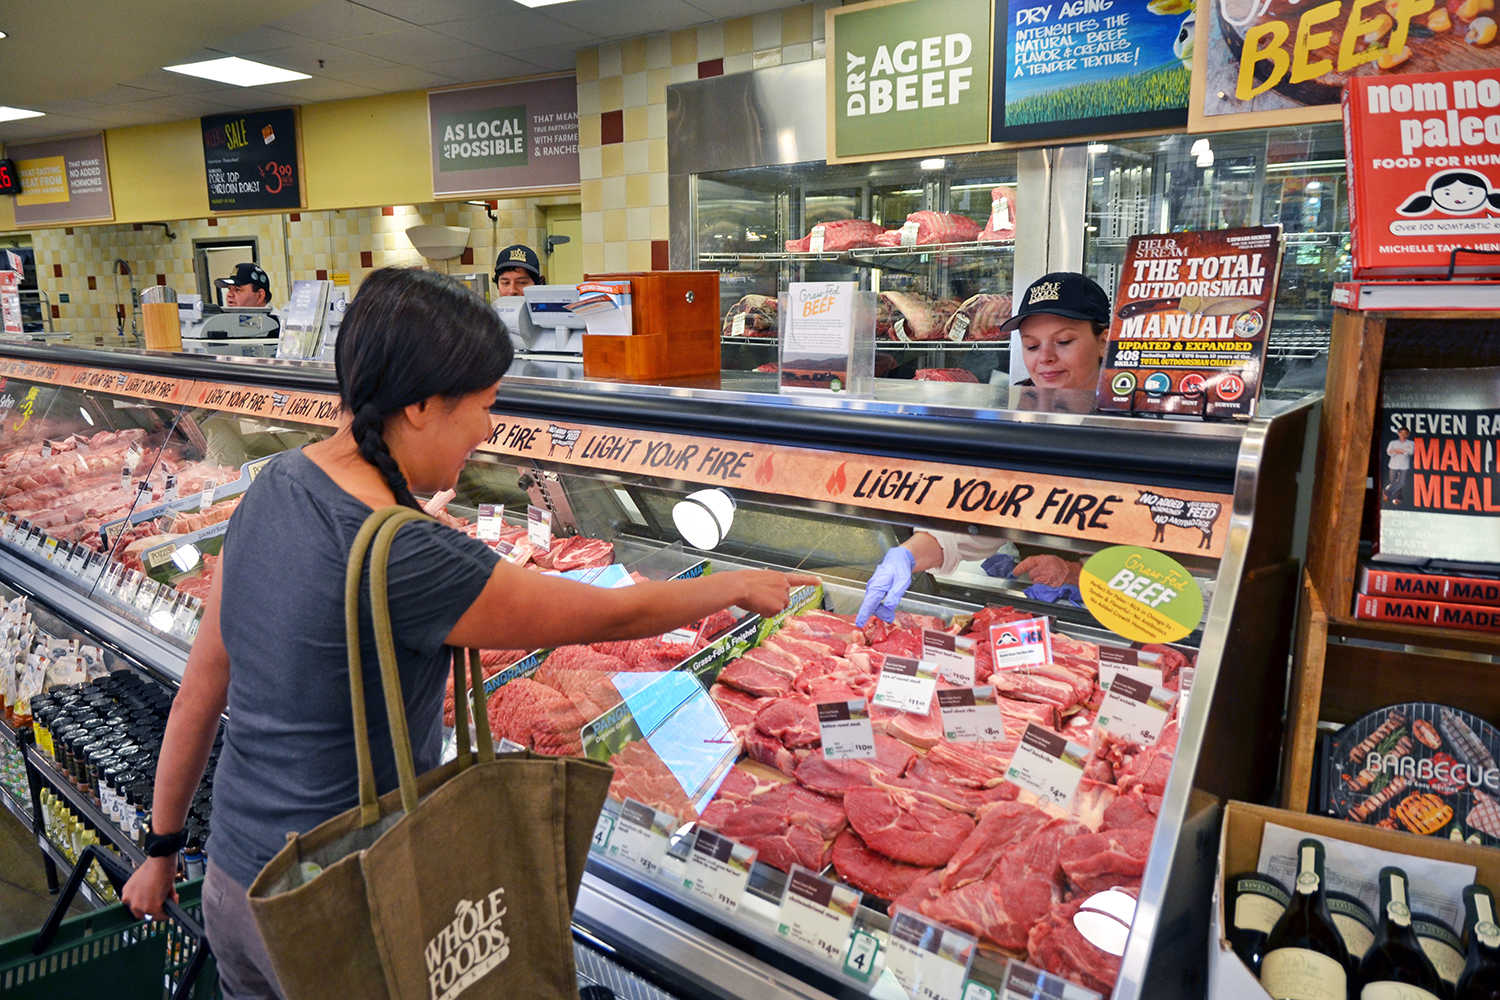 Whole Foods Butcher Meat